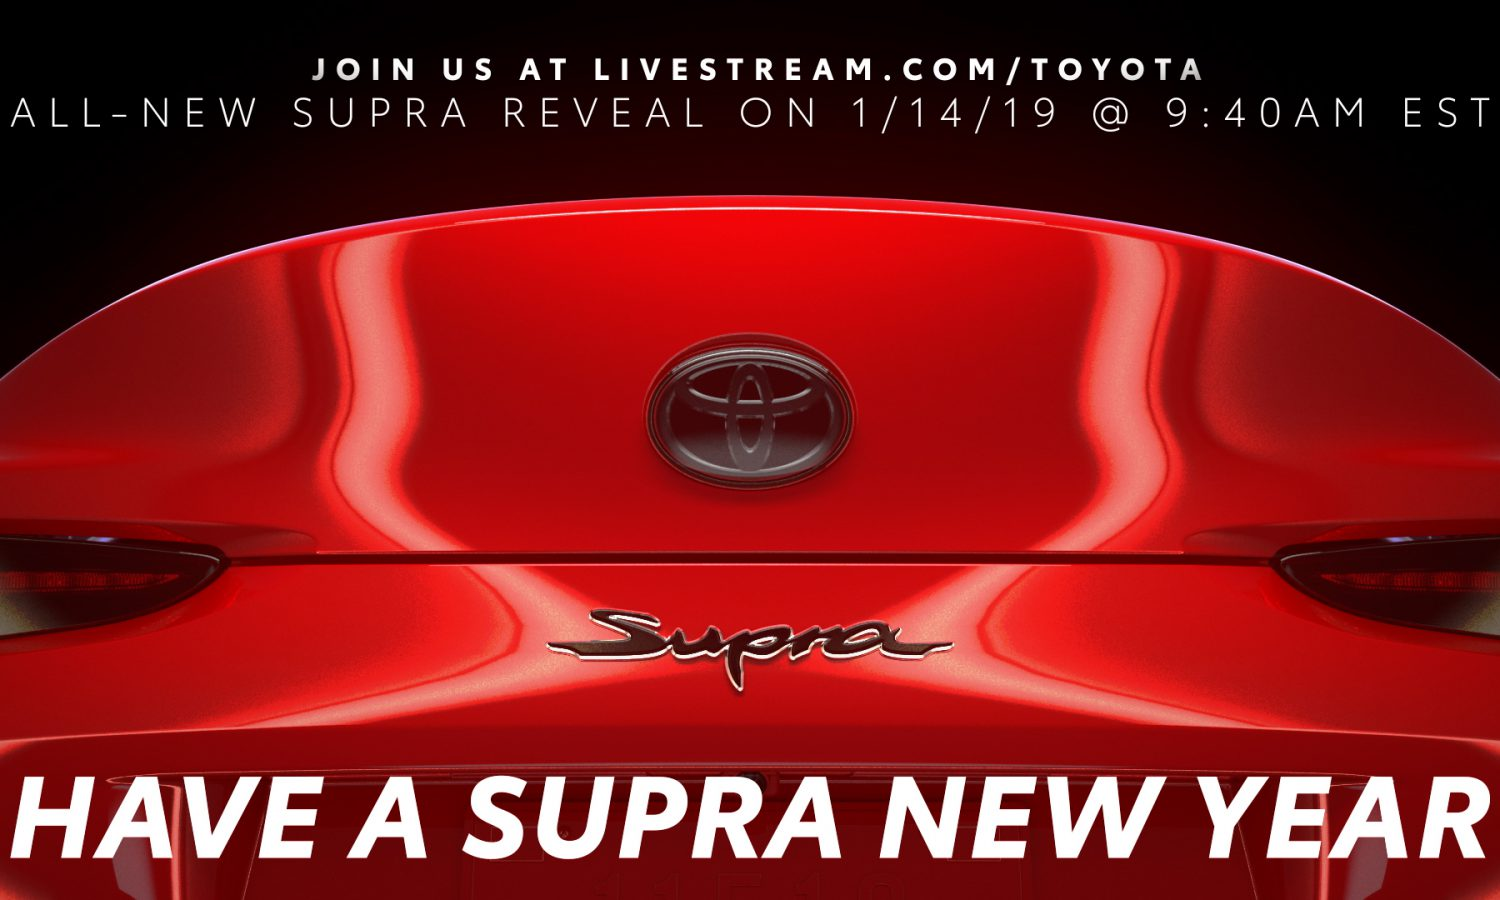 Have a Supra New Year!